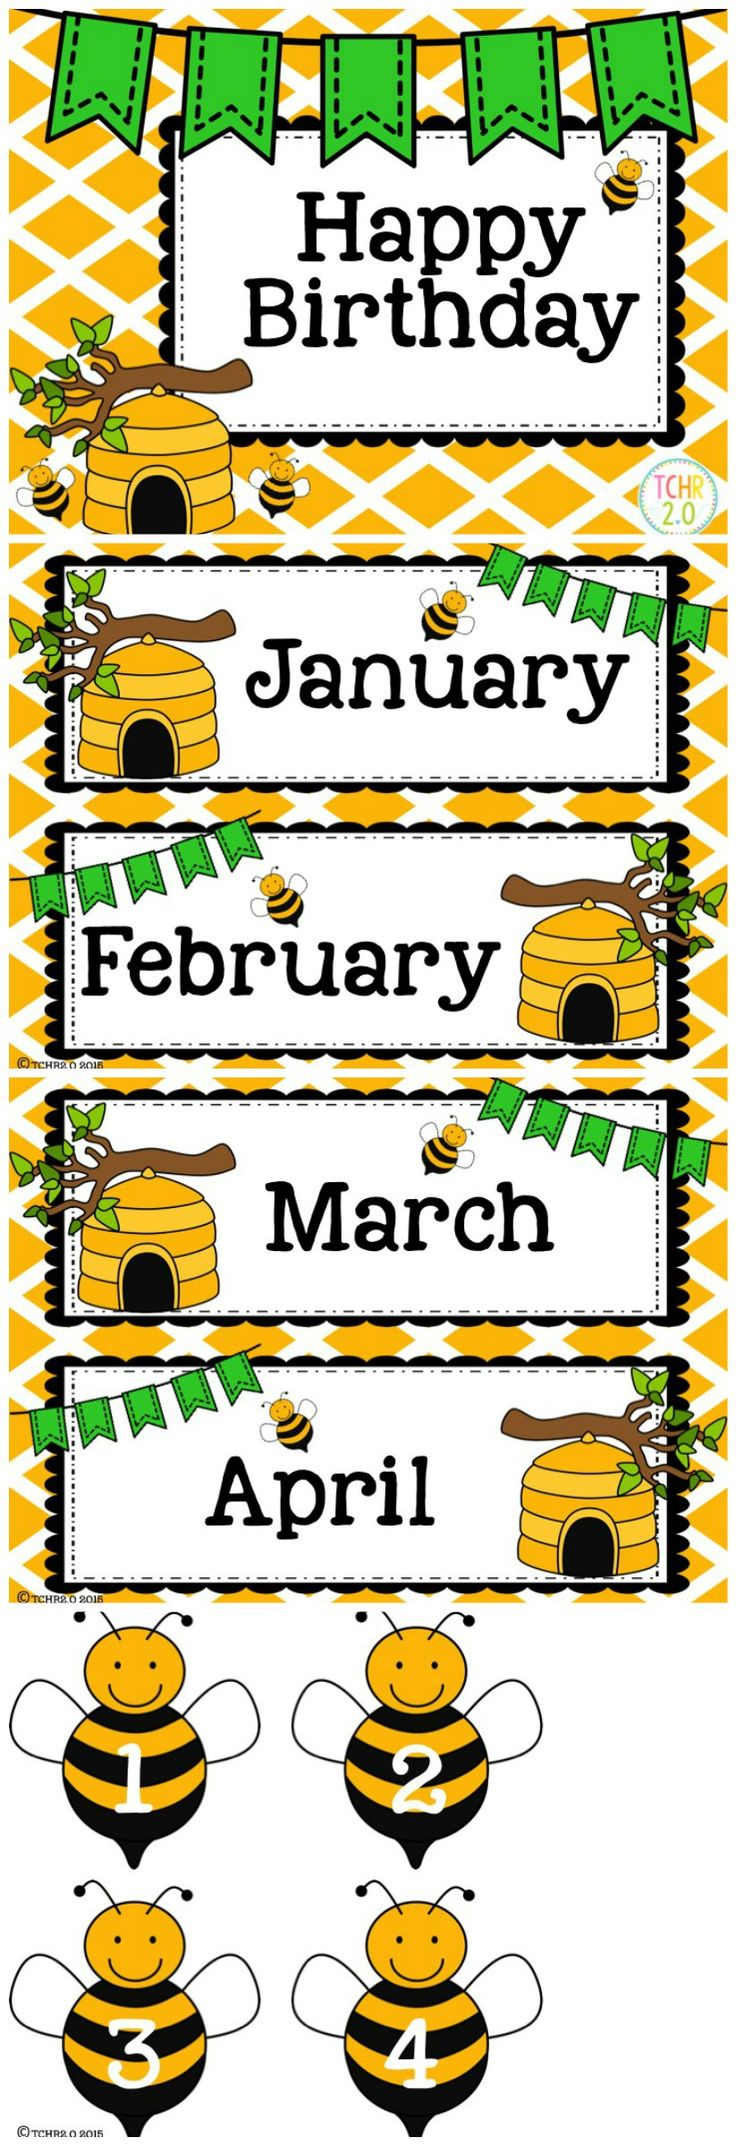 Have the children hold a bee with the number of the day of their birthday and take their picture. Print their picture and then put it under the month of their birthday. So the bulletin board will be made with their pictures.